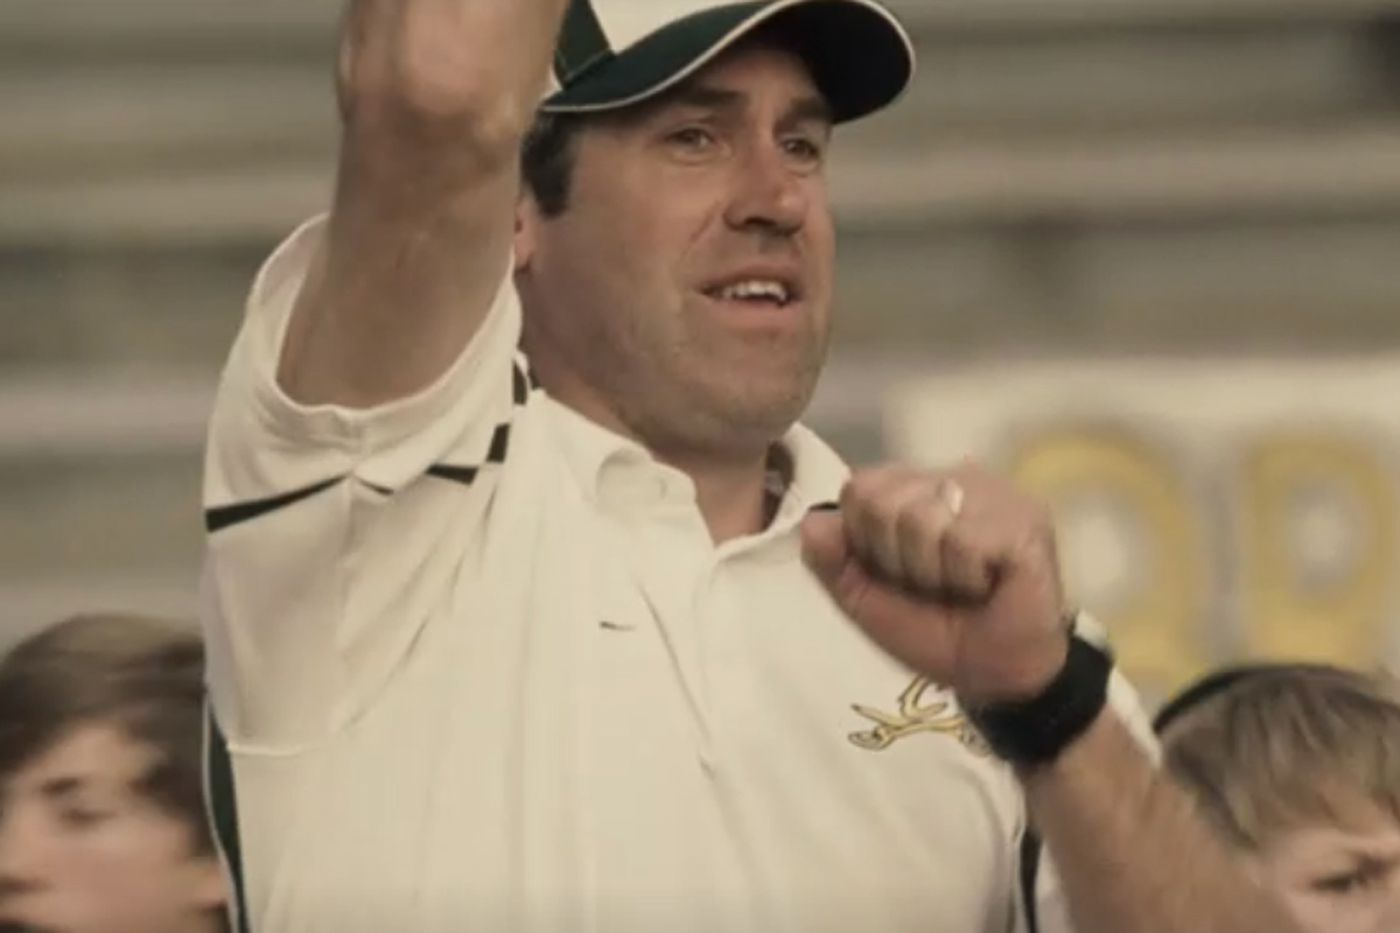 Doug Pederson's cameo in Ice Cube film 'The Longshots' unearthed by Reddit